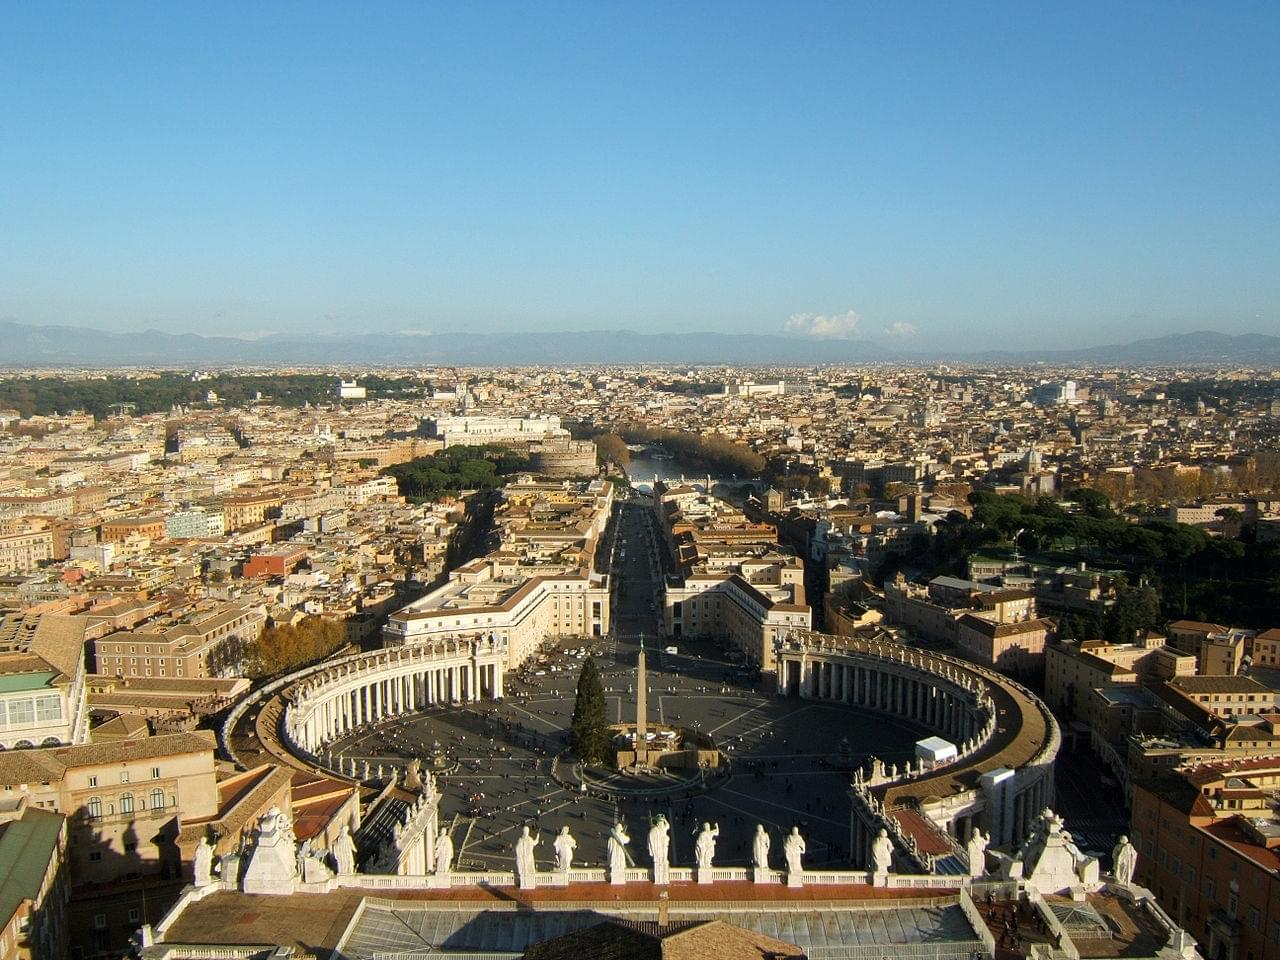 Introduction Saint-Peter's Basilica and the Vatican